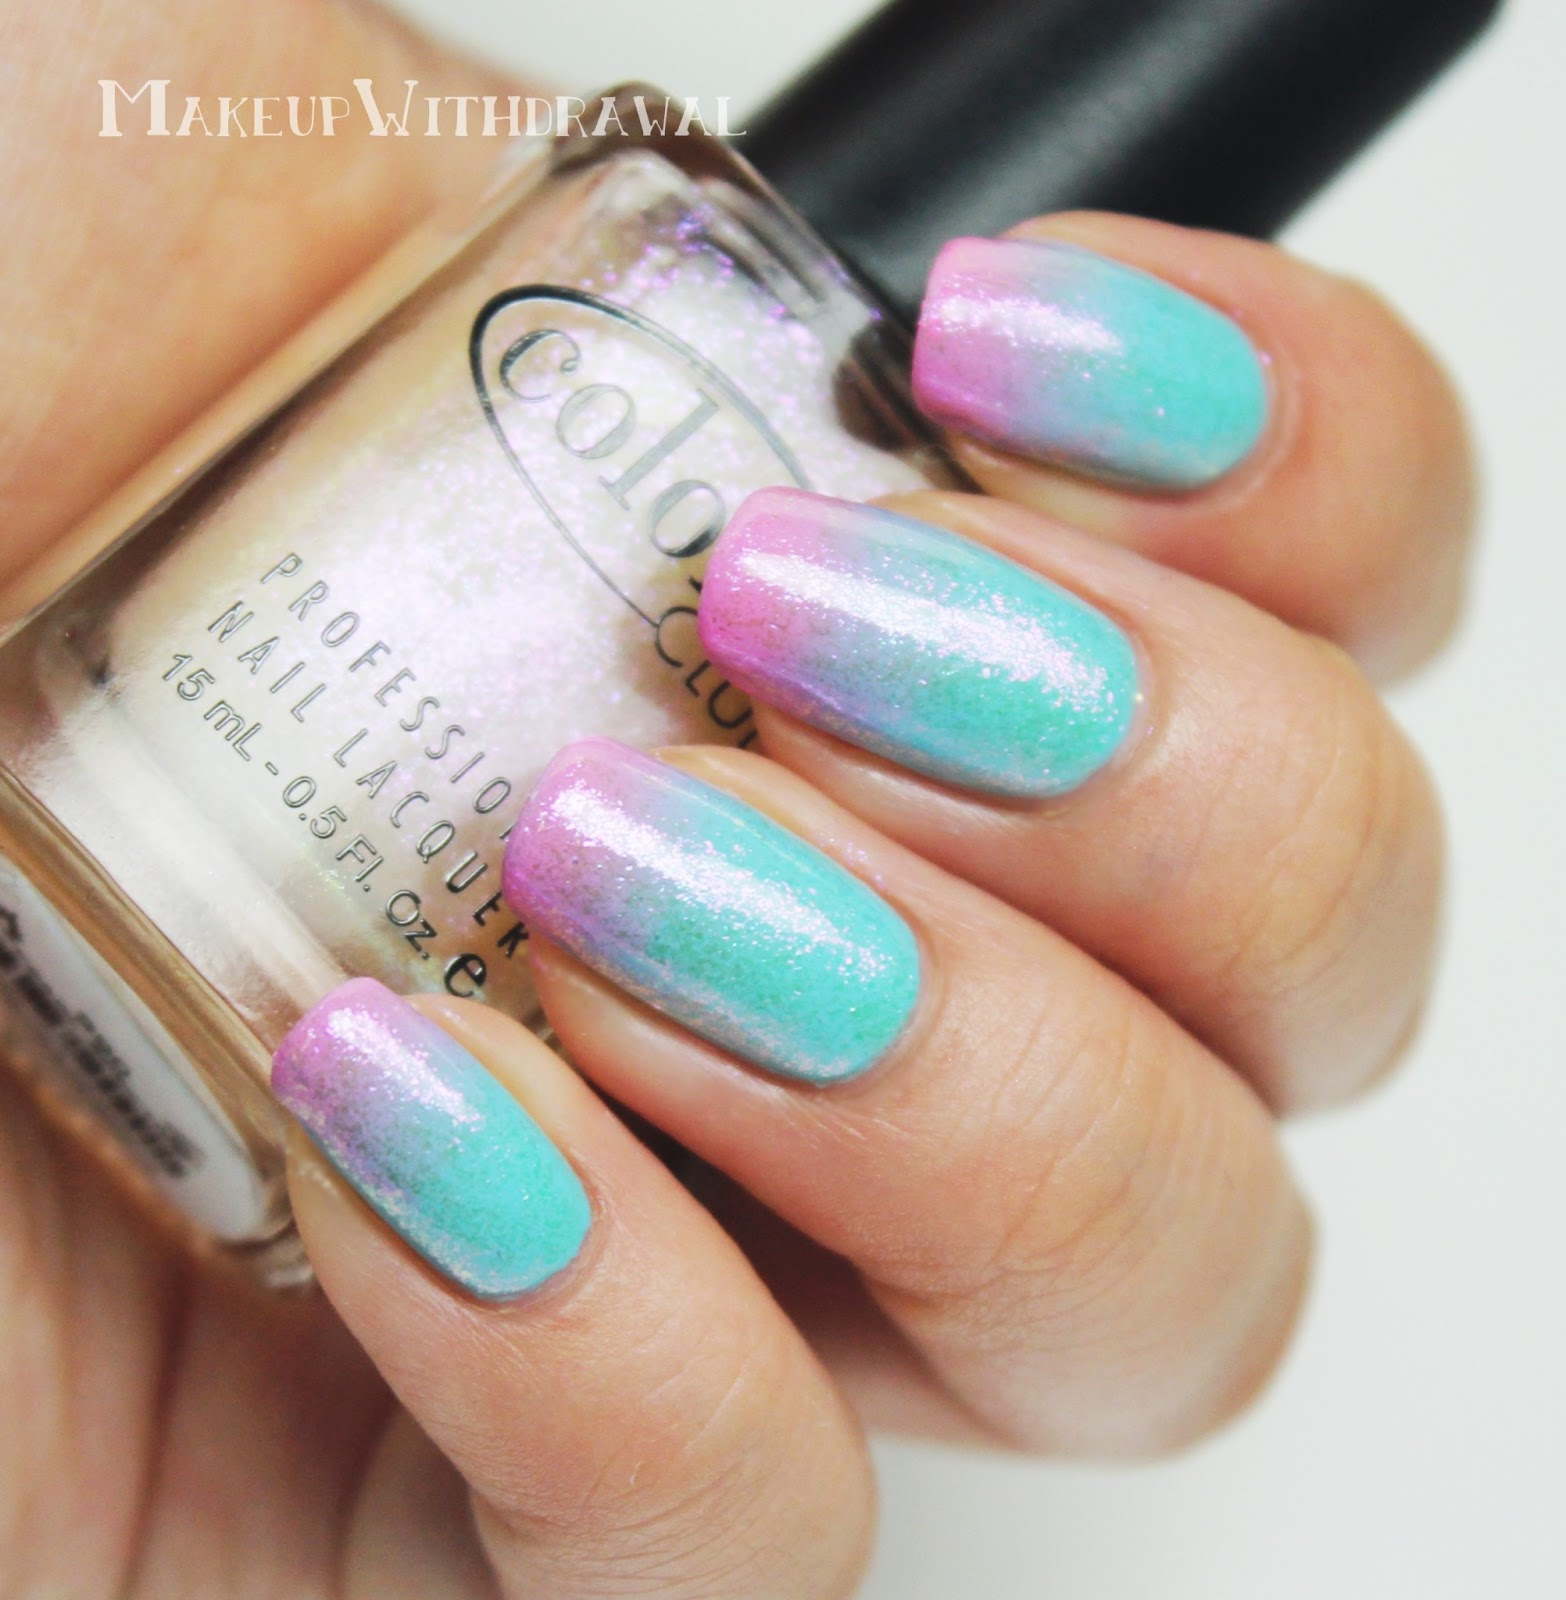 Color Club Cotton Candy Gradient | Makeup Withdrawal